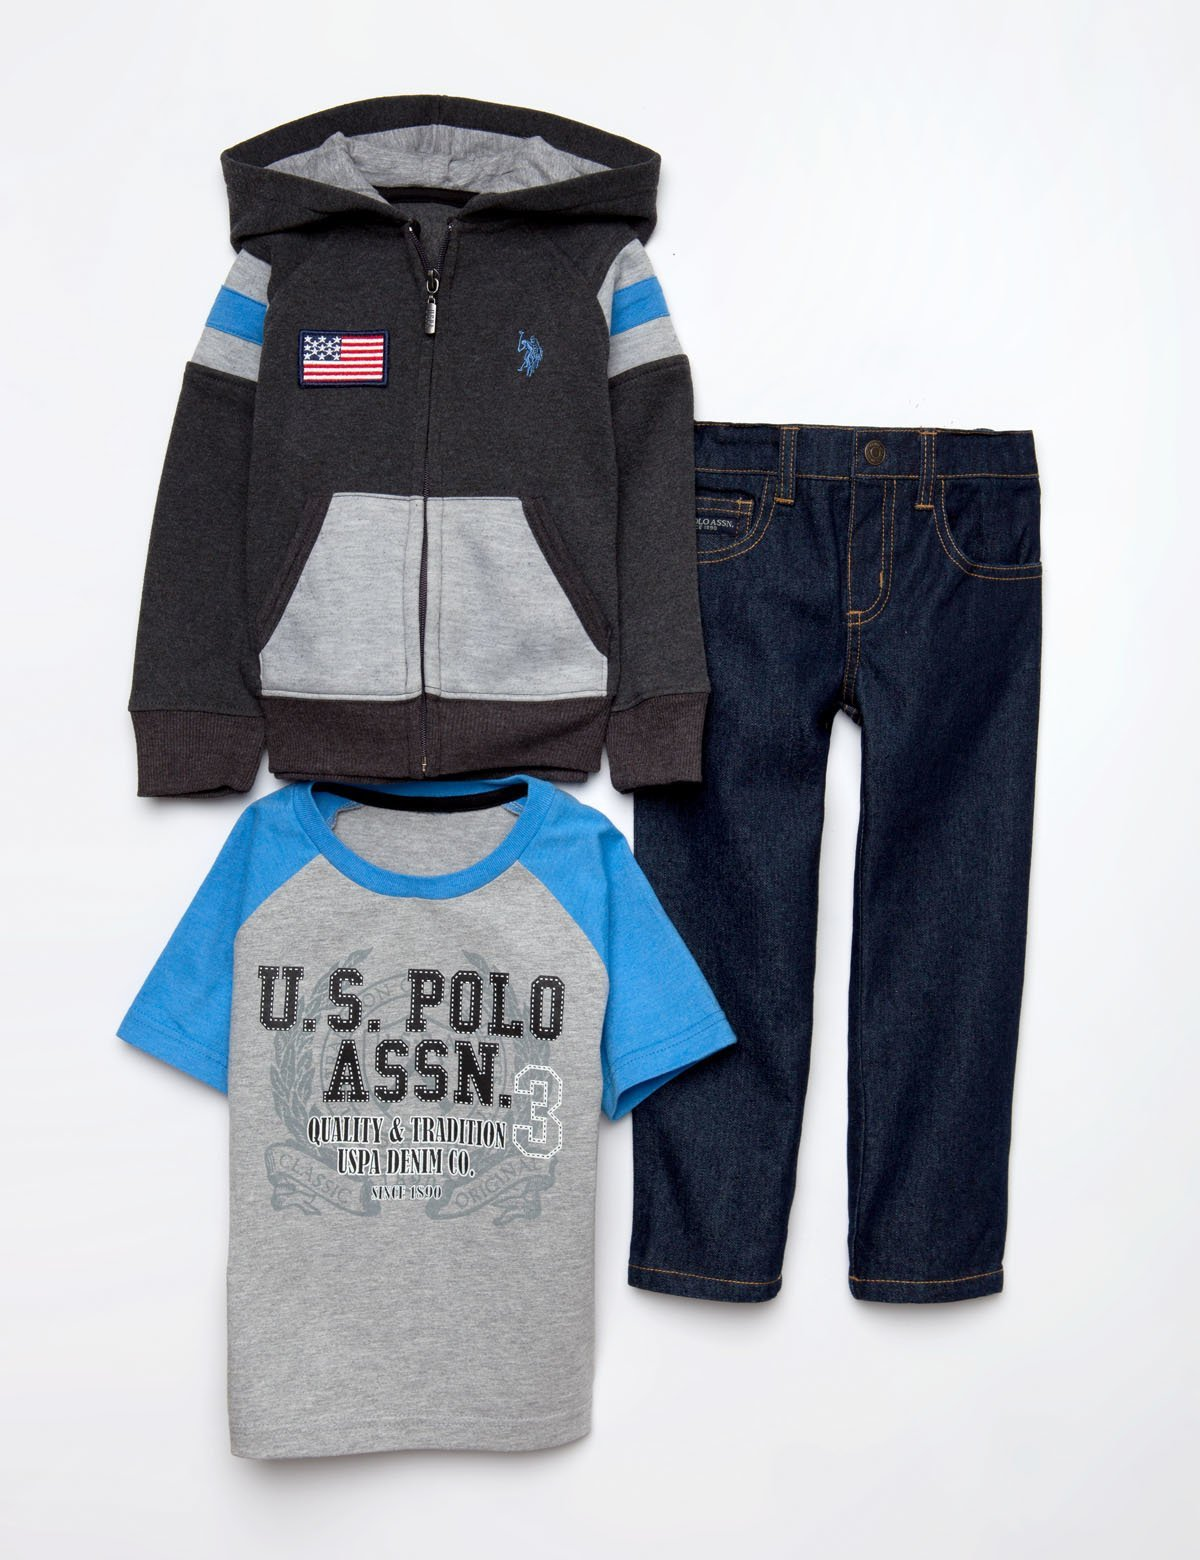 TODDLER 3 PIECE SET - FLEECE, TEE & JEANS